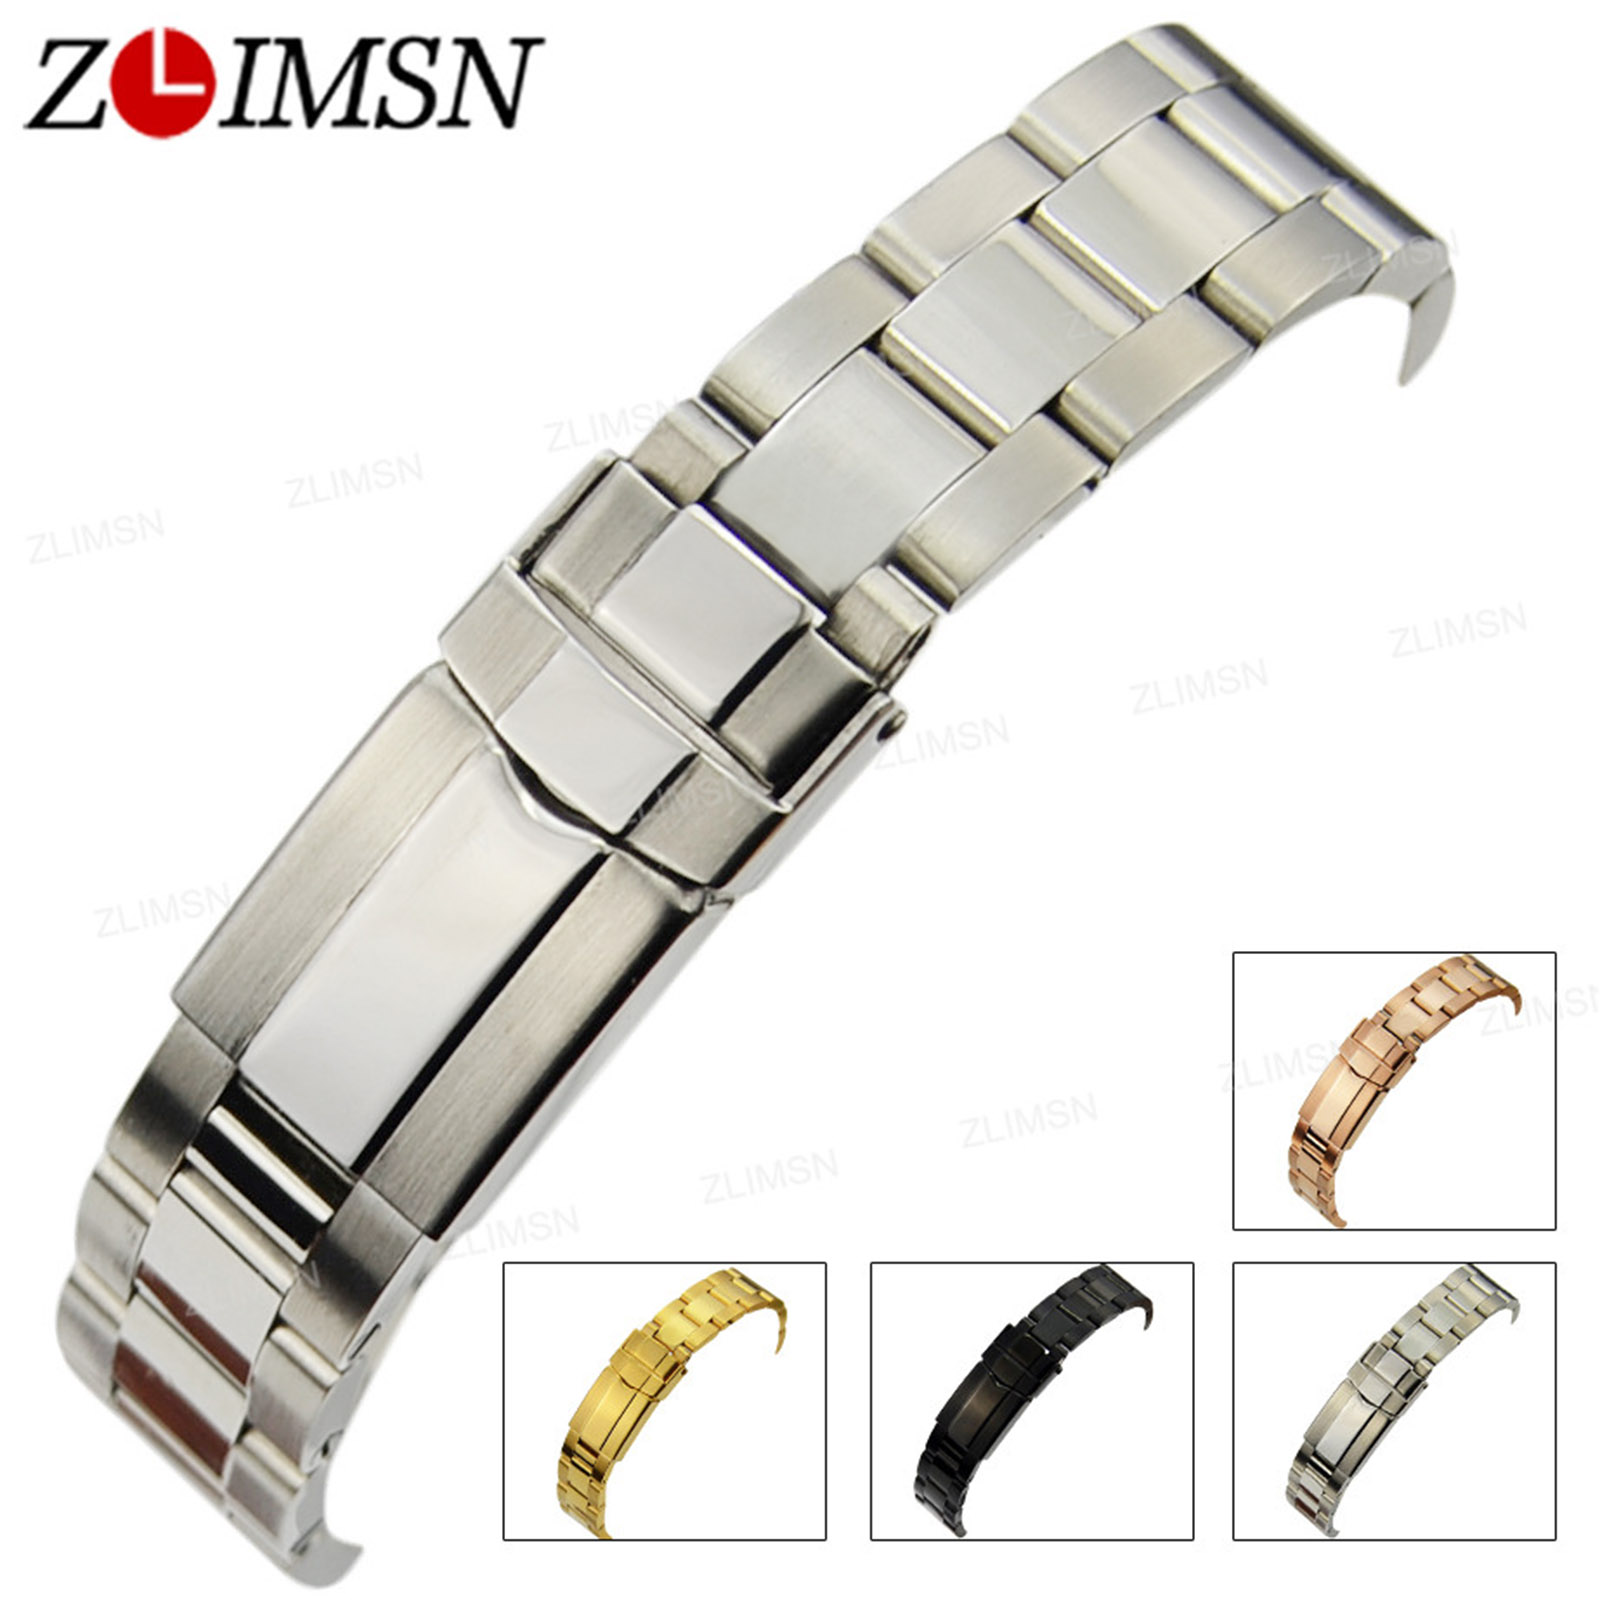 ZLIMSN Watch Strap 17mm 20mm Stainless Steel Watchband Curved End Bands Replacement Watches Accessories Relogio Masculino весы redmond rs m734